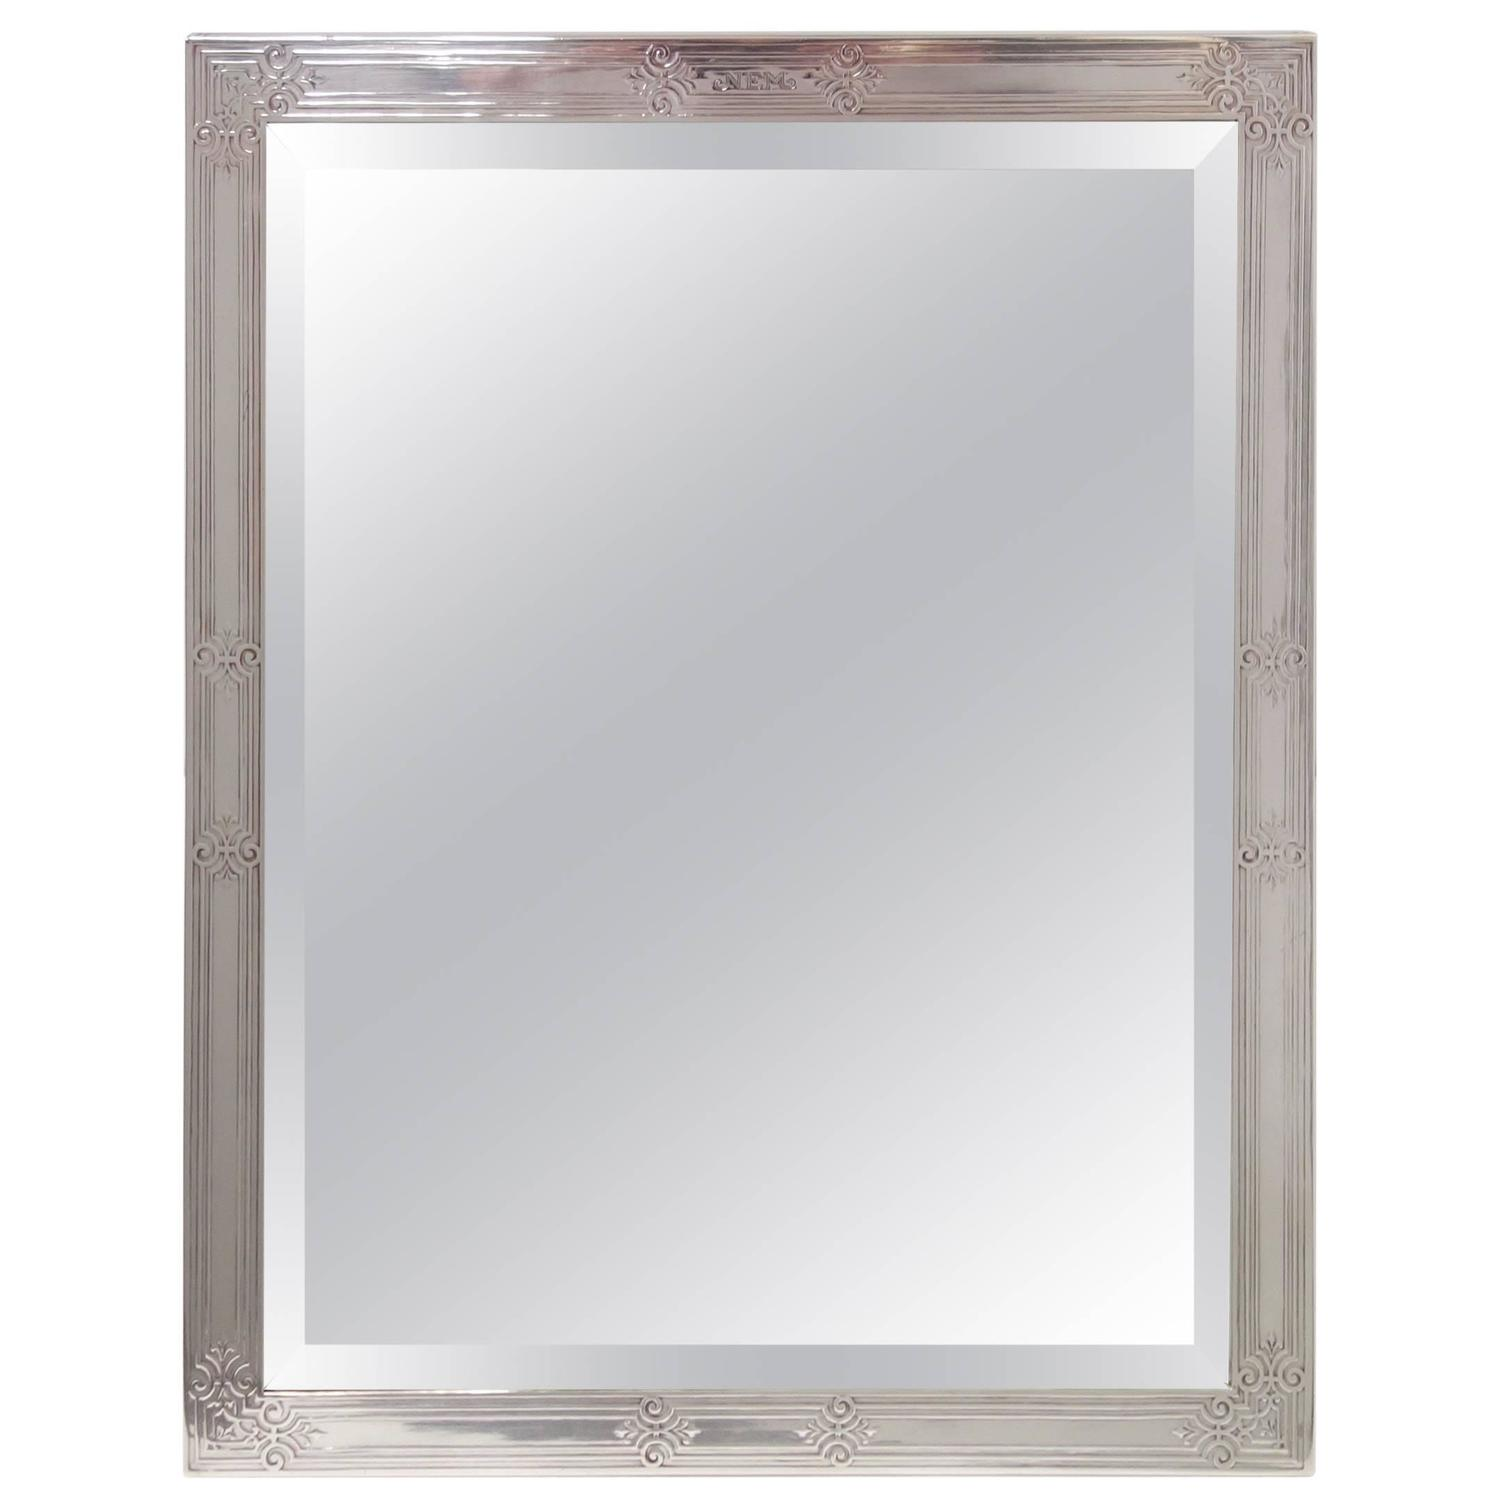 Tiffany and co large sterling silver frame wood backed for Silver framed mirrors on sale